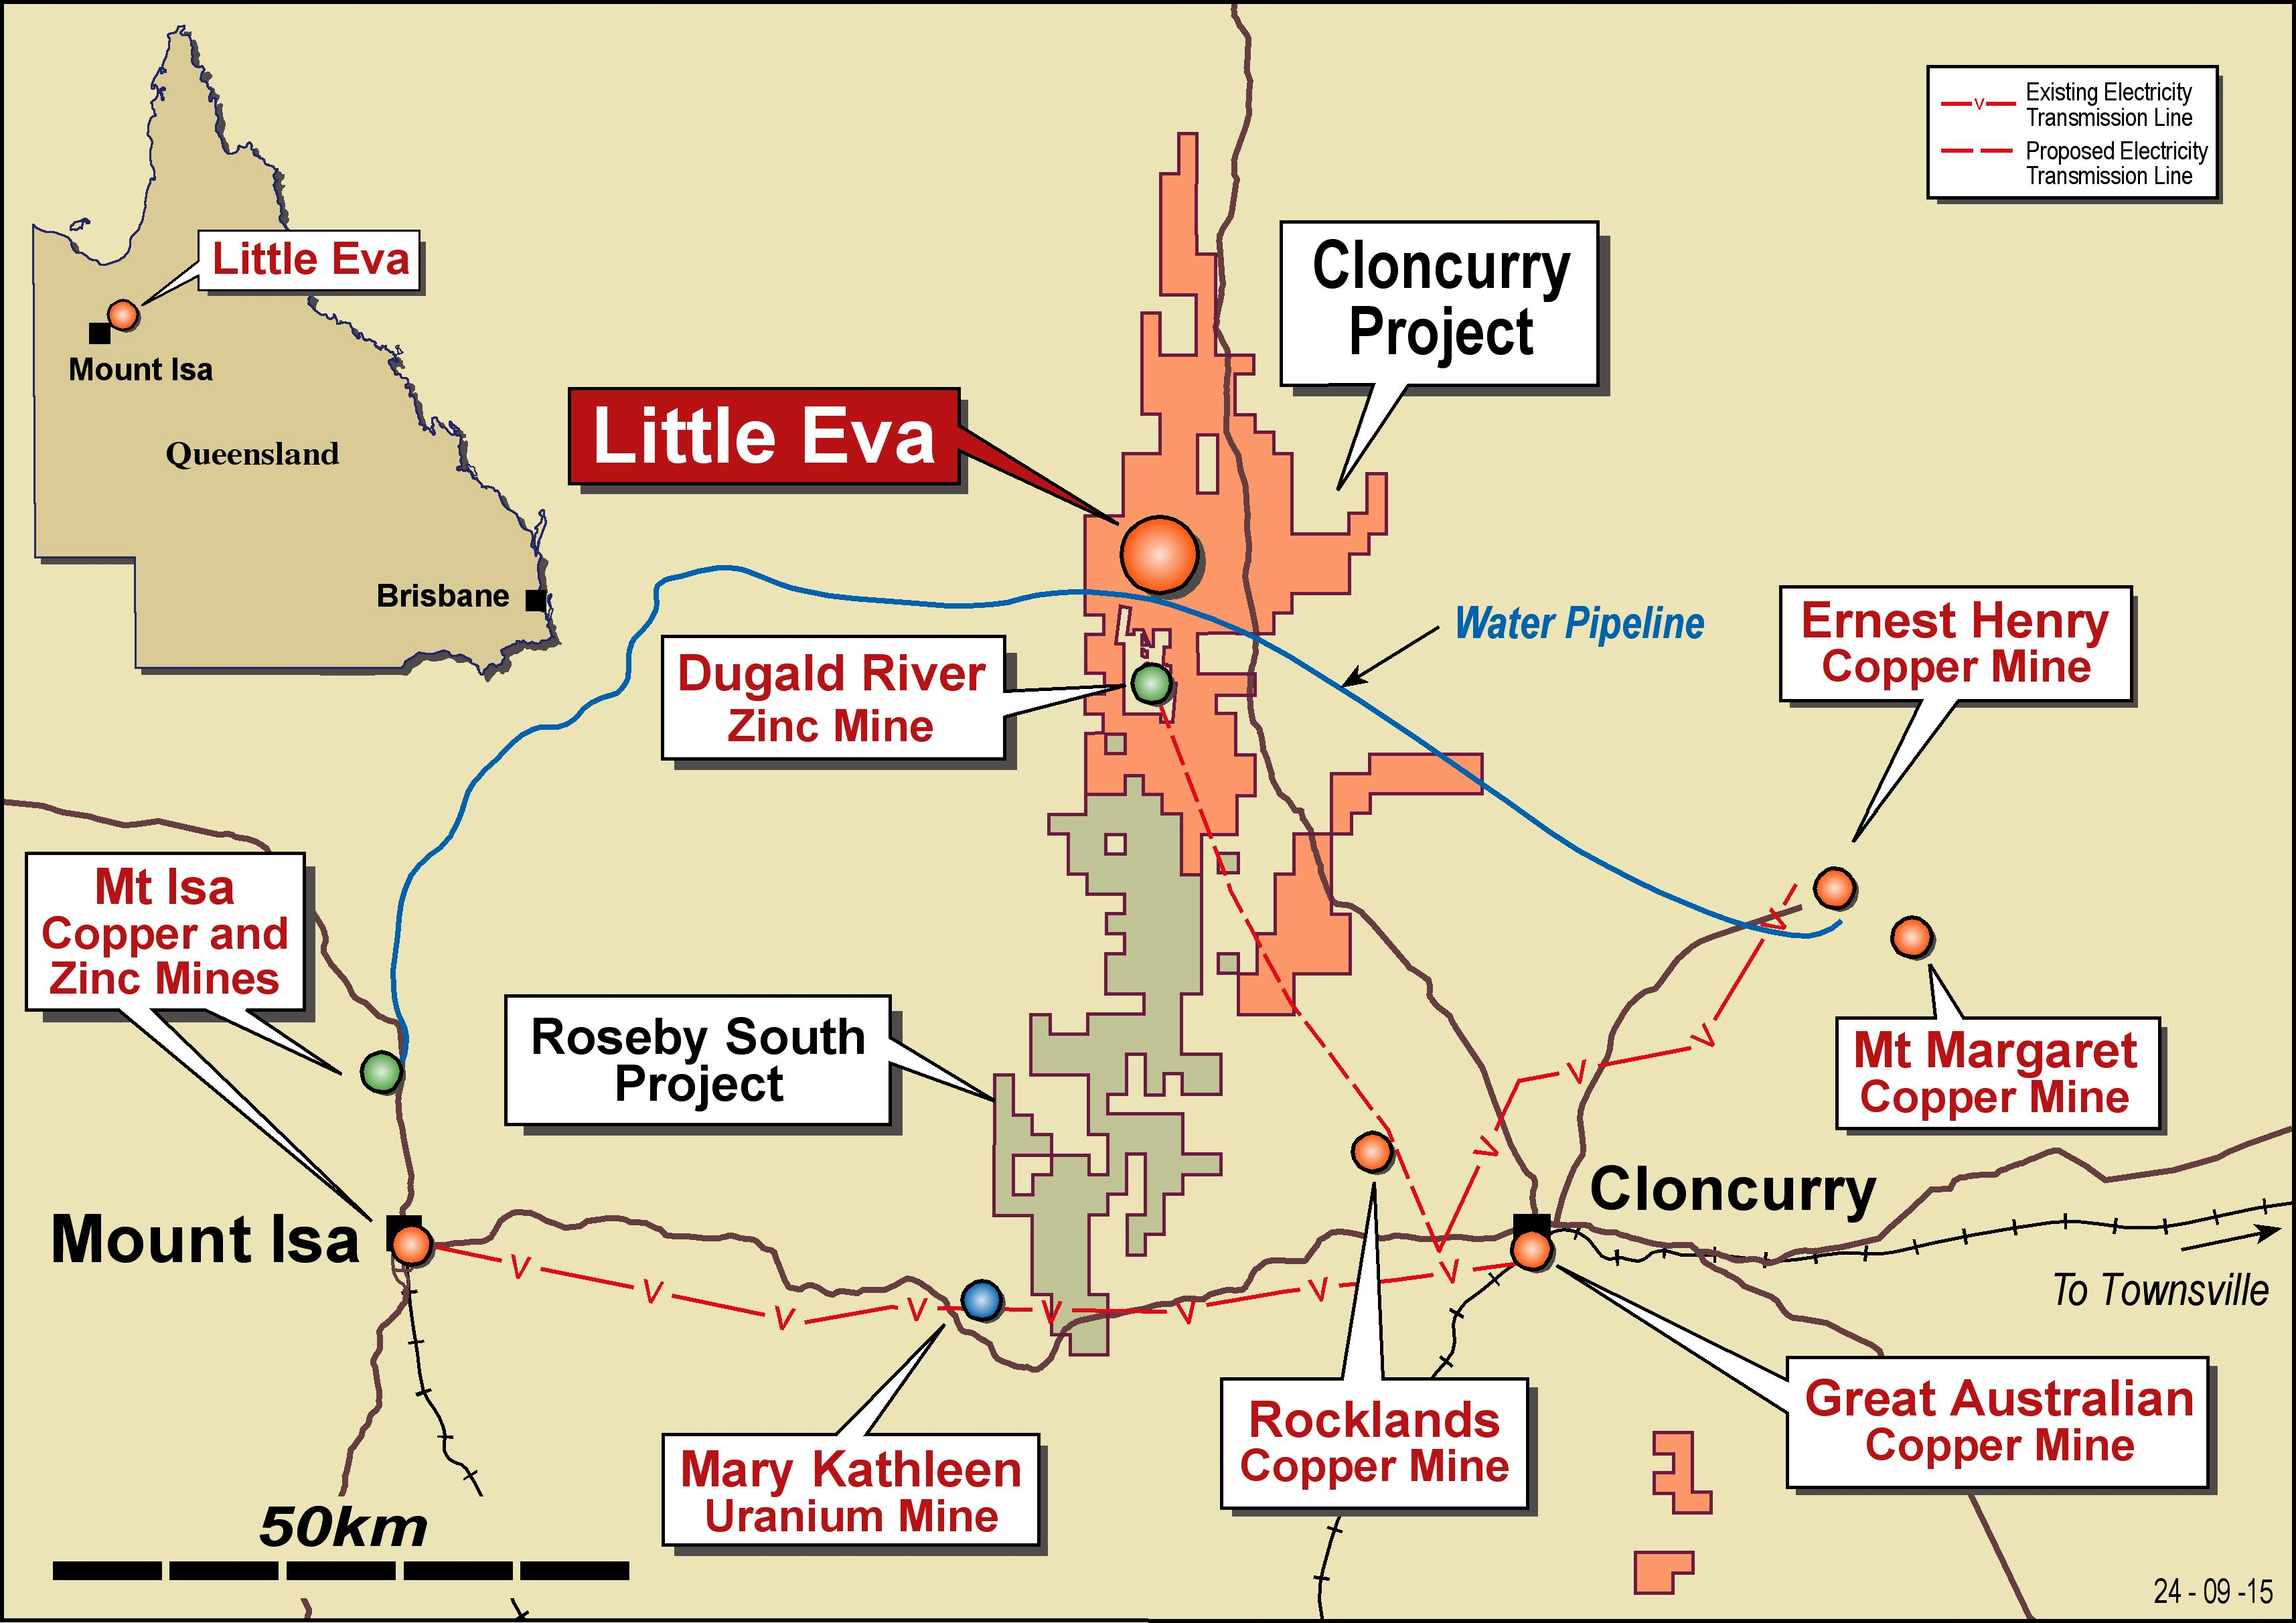 Altona and SRIG sign Cloncurry project joint venture agreement